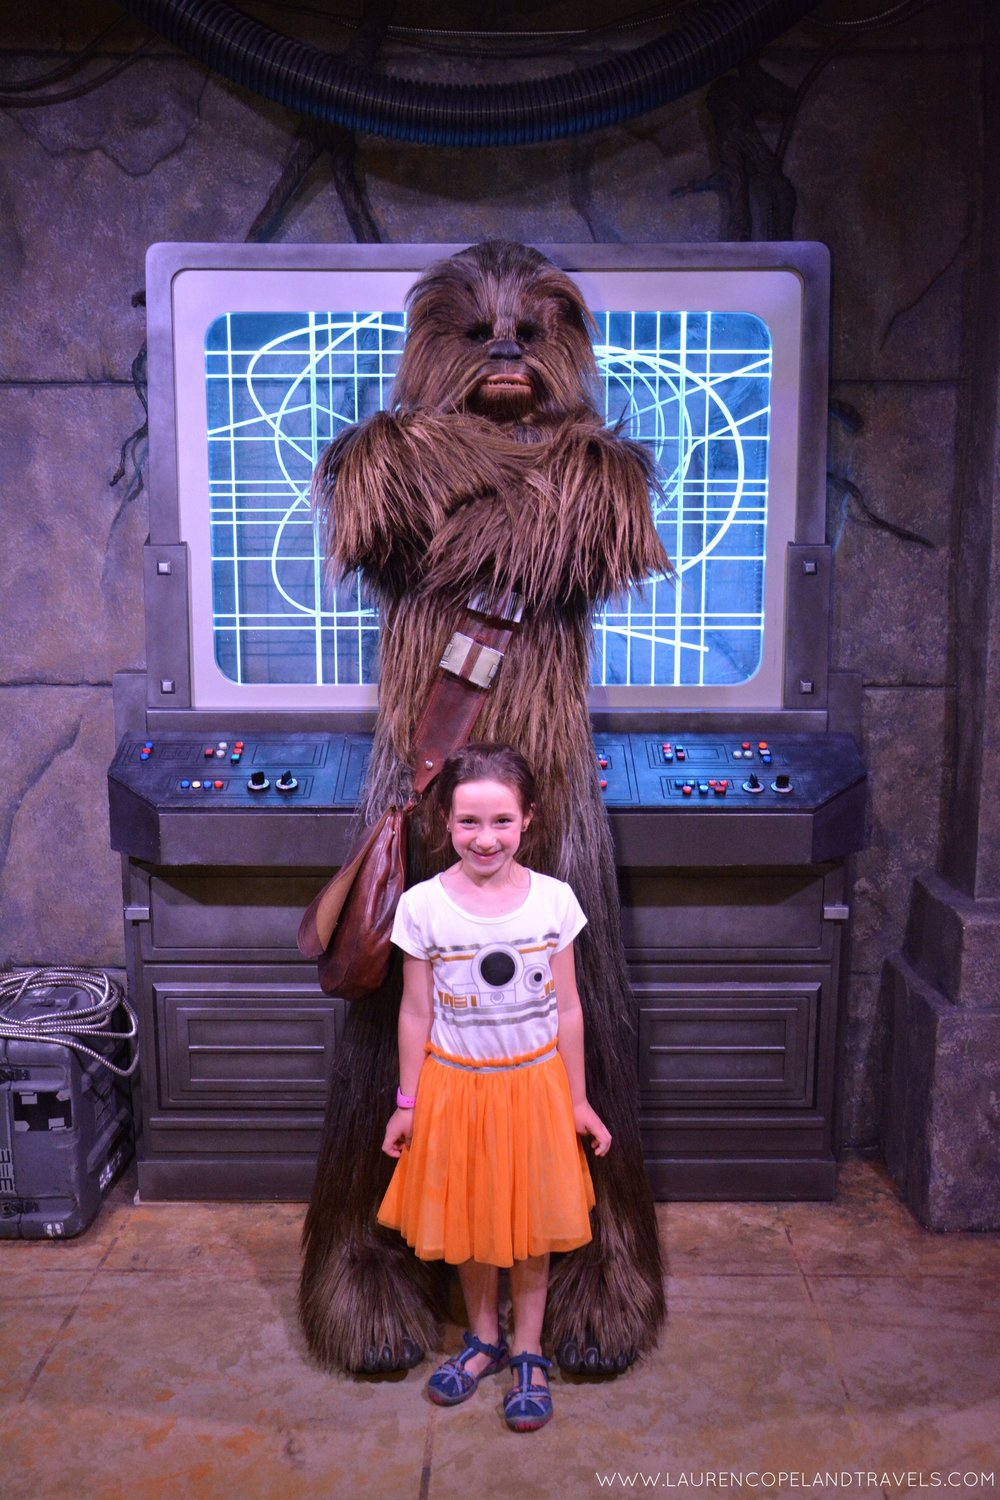 My daughter meeting Chewy for the first time!